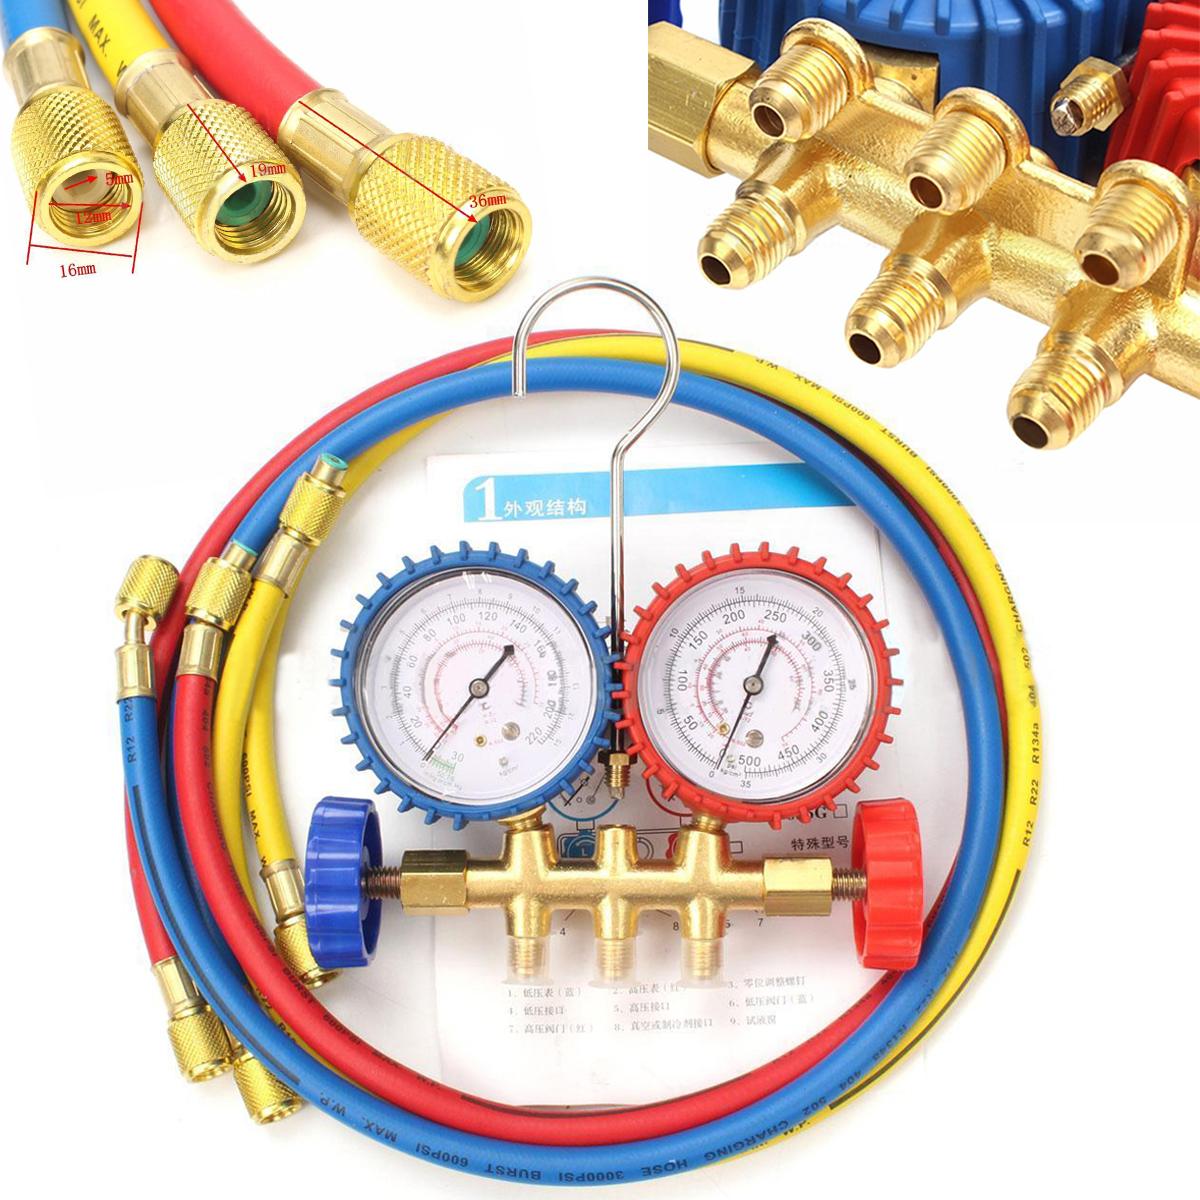 New Manifold Gauge Set Charging For R134A R12 R22 R404z Air Condition Refrigeration<br>